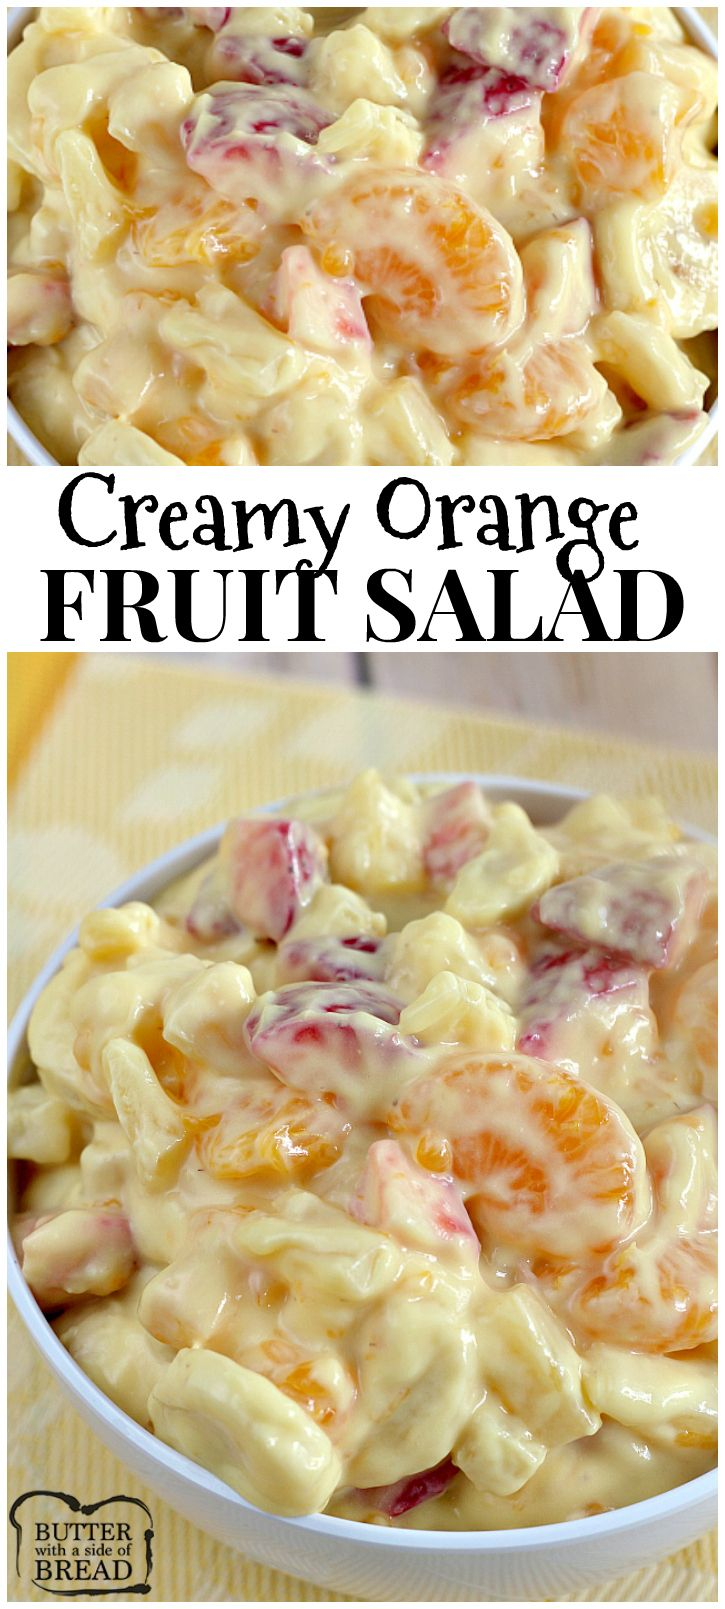 Easy & insanely delicious Creamy Orange Fruit Salad made with yogurt! Everyone always asks for the recipe - from Butter With a Side of Bread